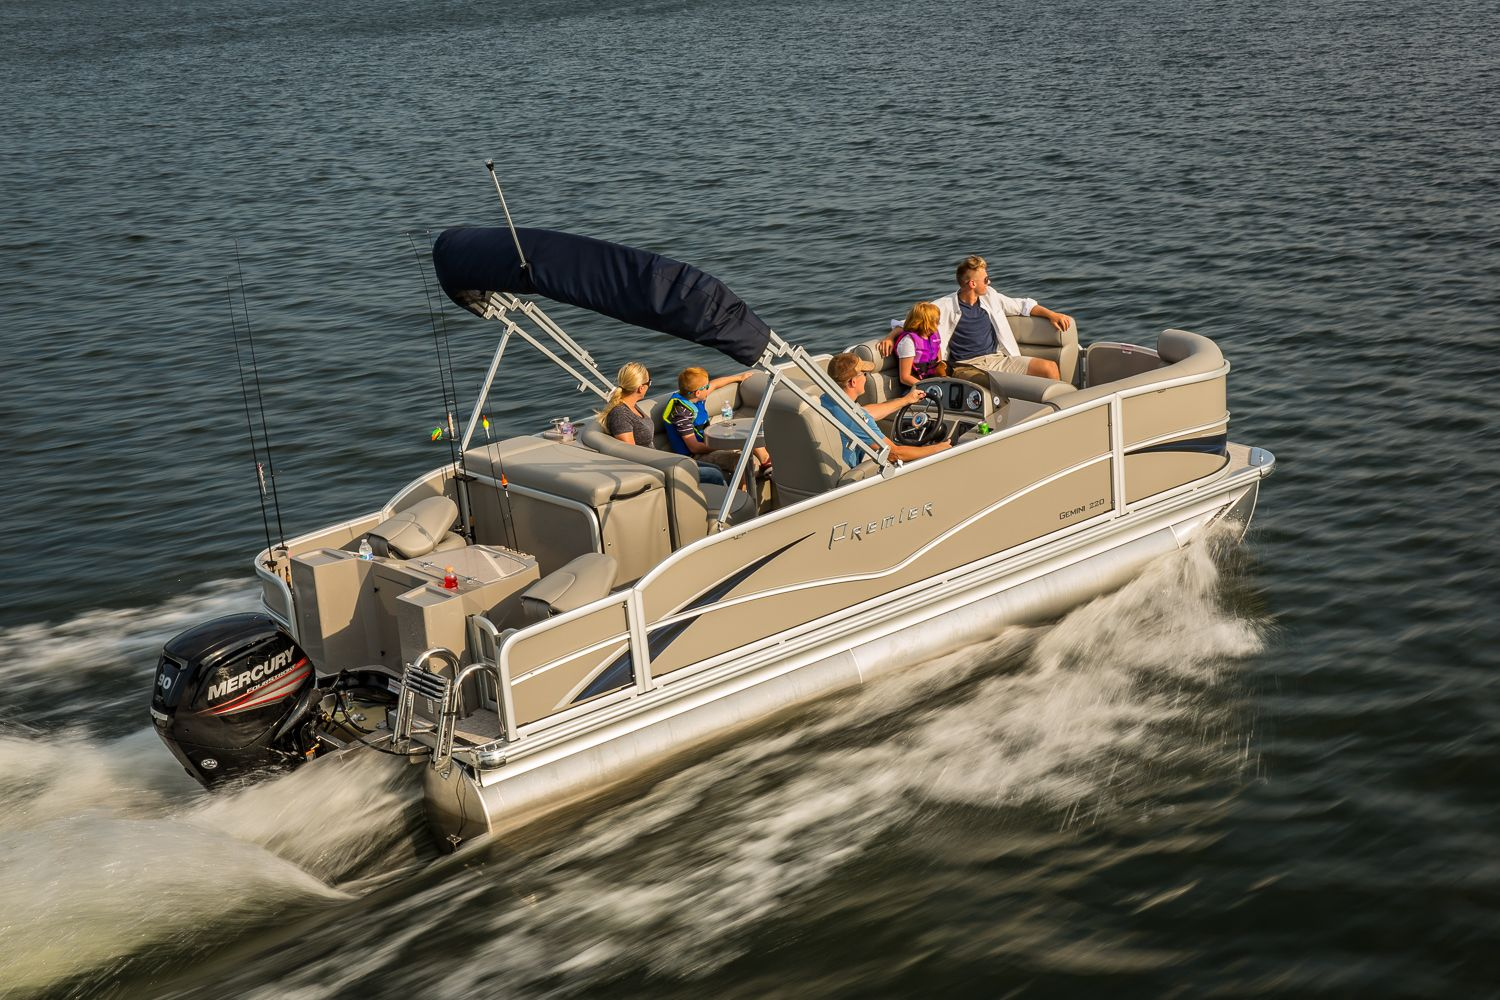 Pontoon rentals brainerd lakes area mn lake fun rentals for Fishing boat rental